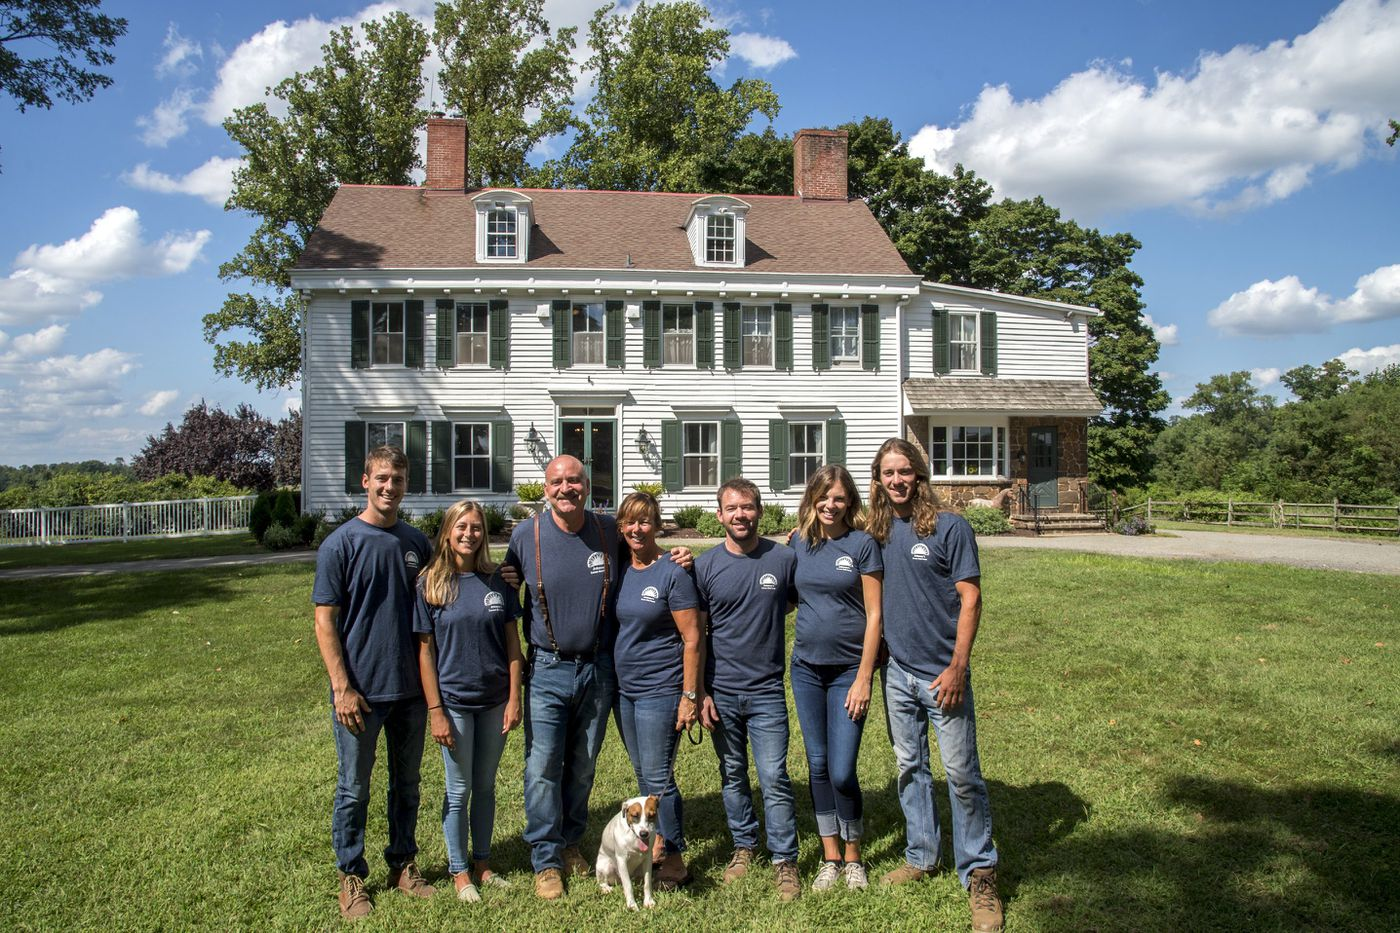 South Jersey's Johnson family spreads out on a second agritourism farm